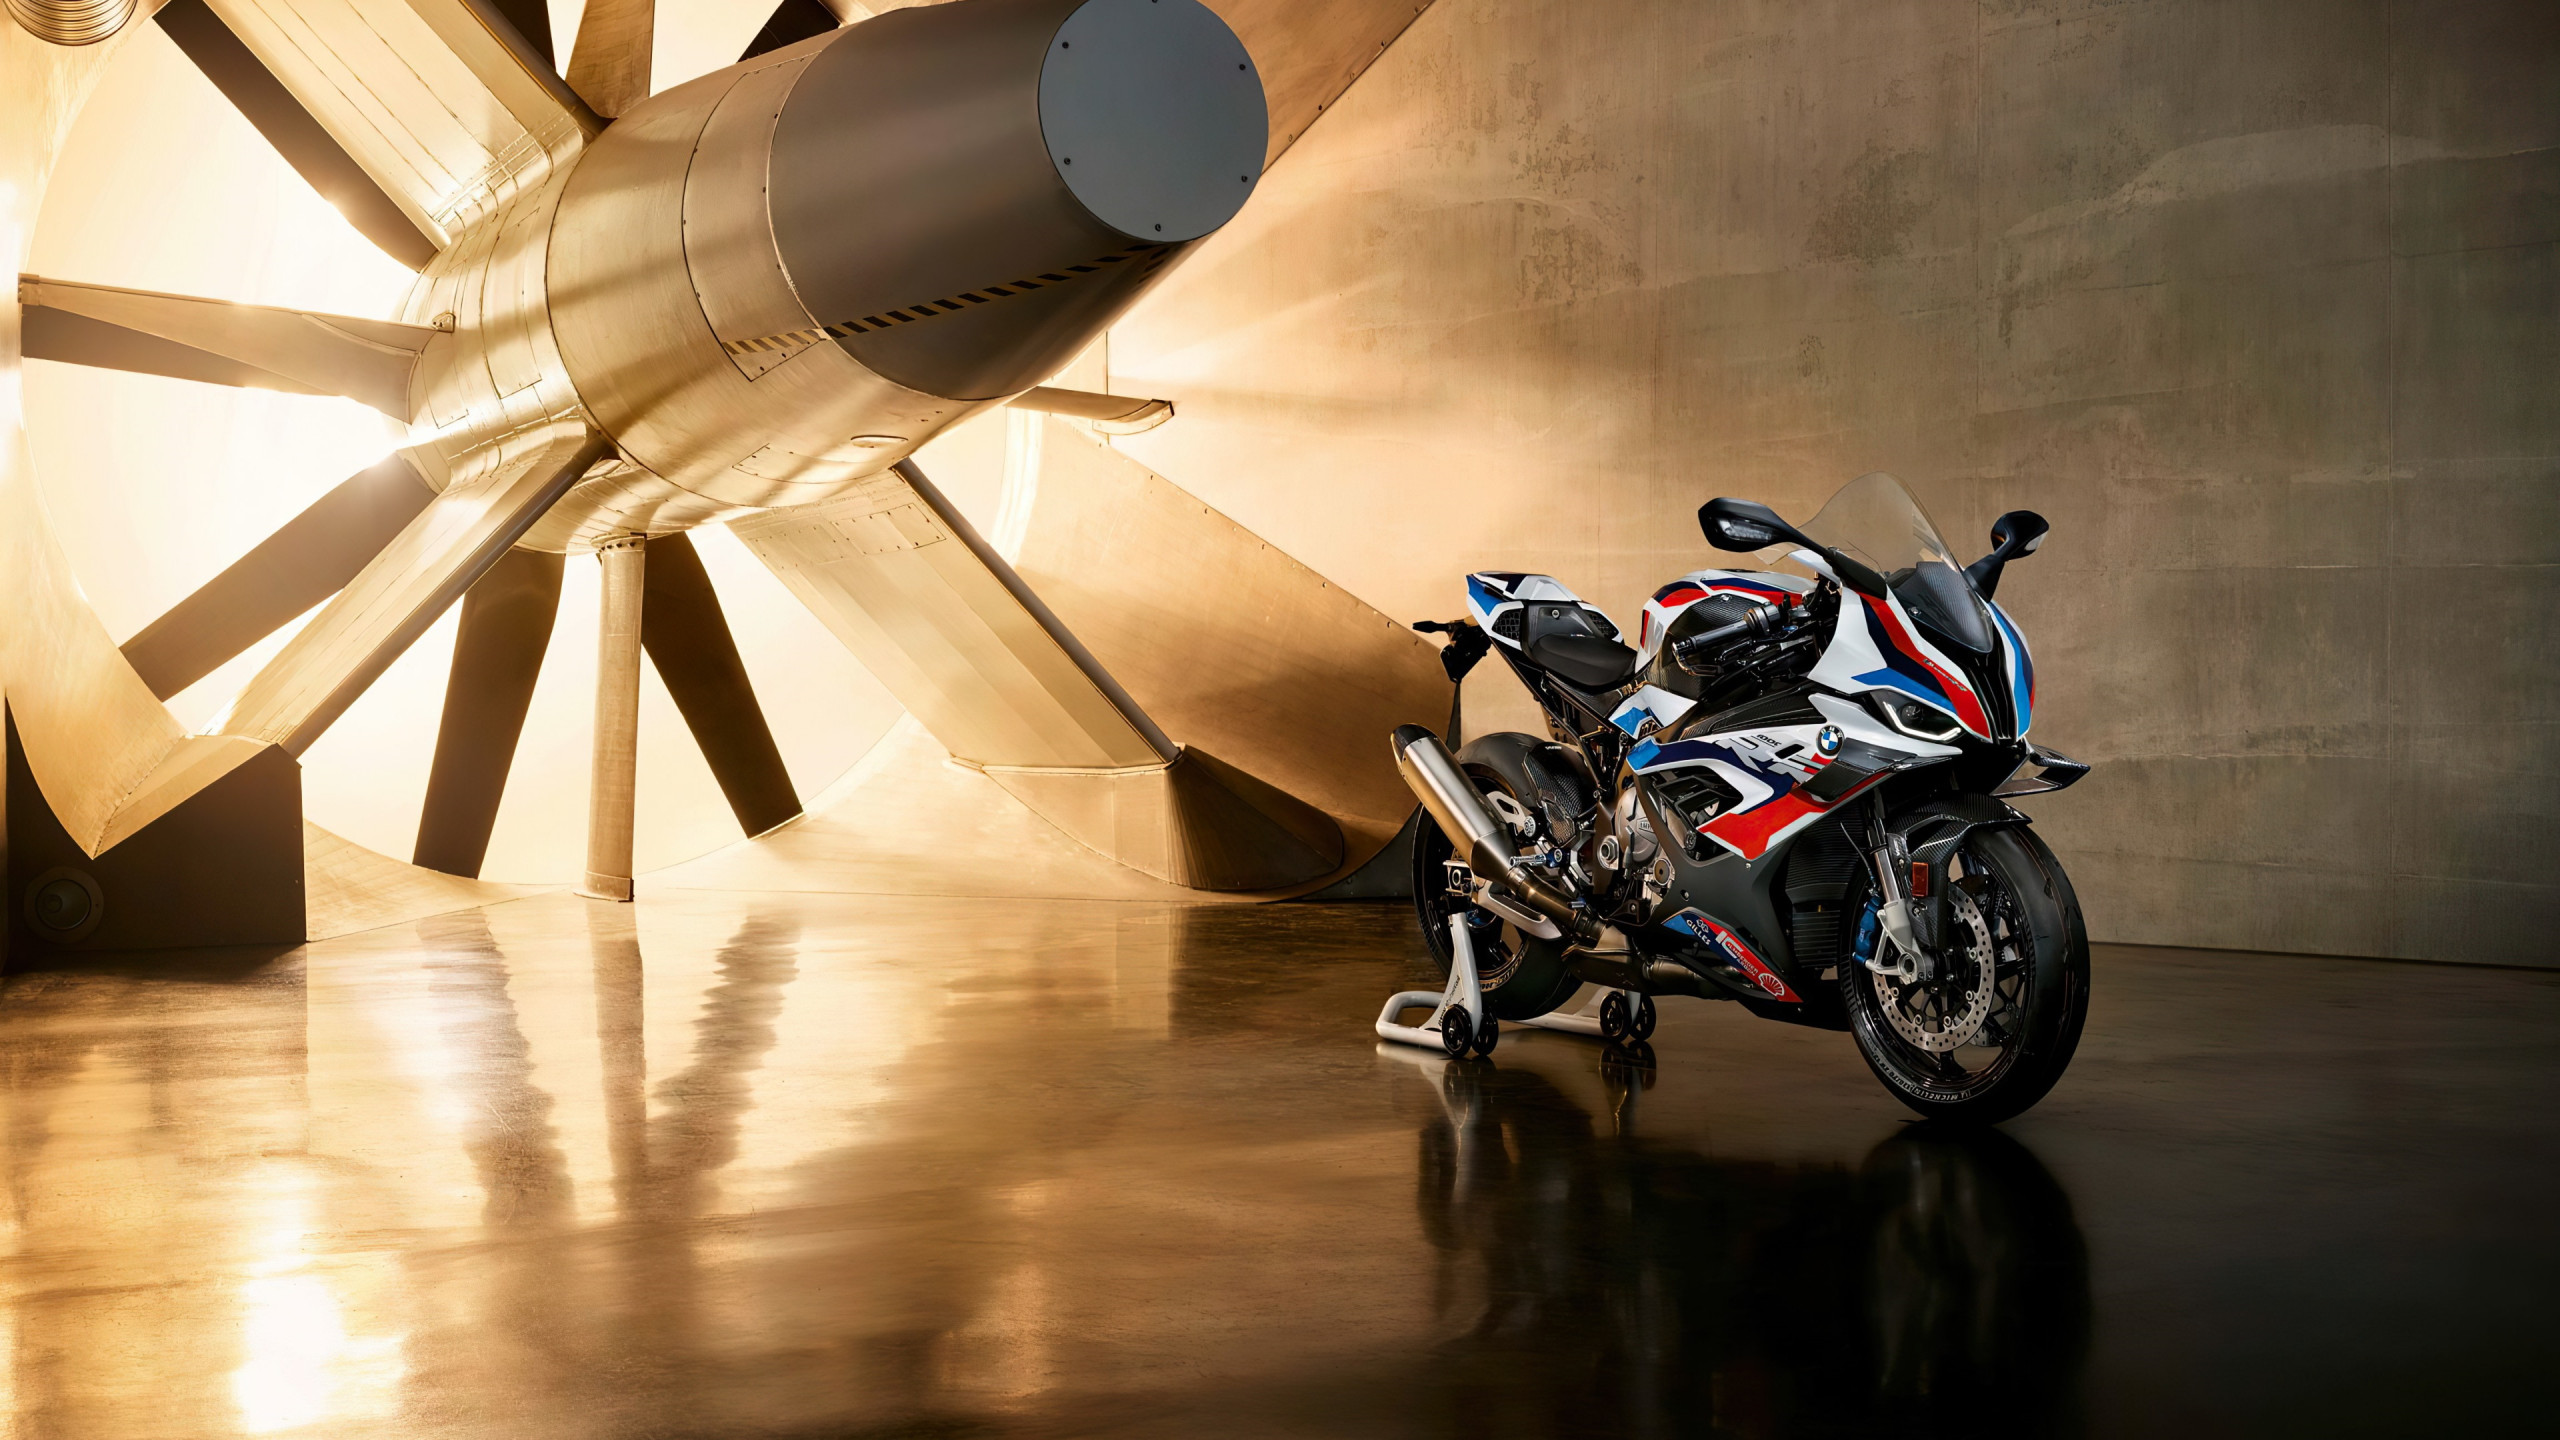 BMW M1000RR wallpaper 2560x1440